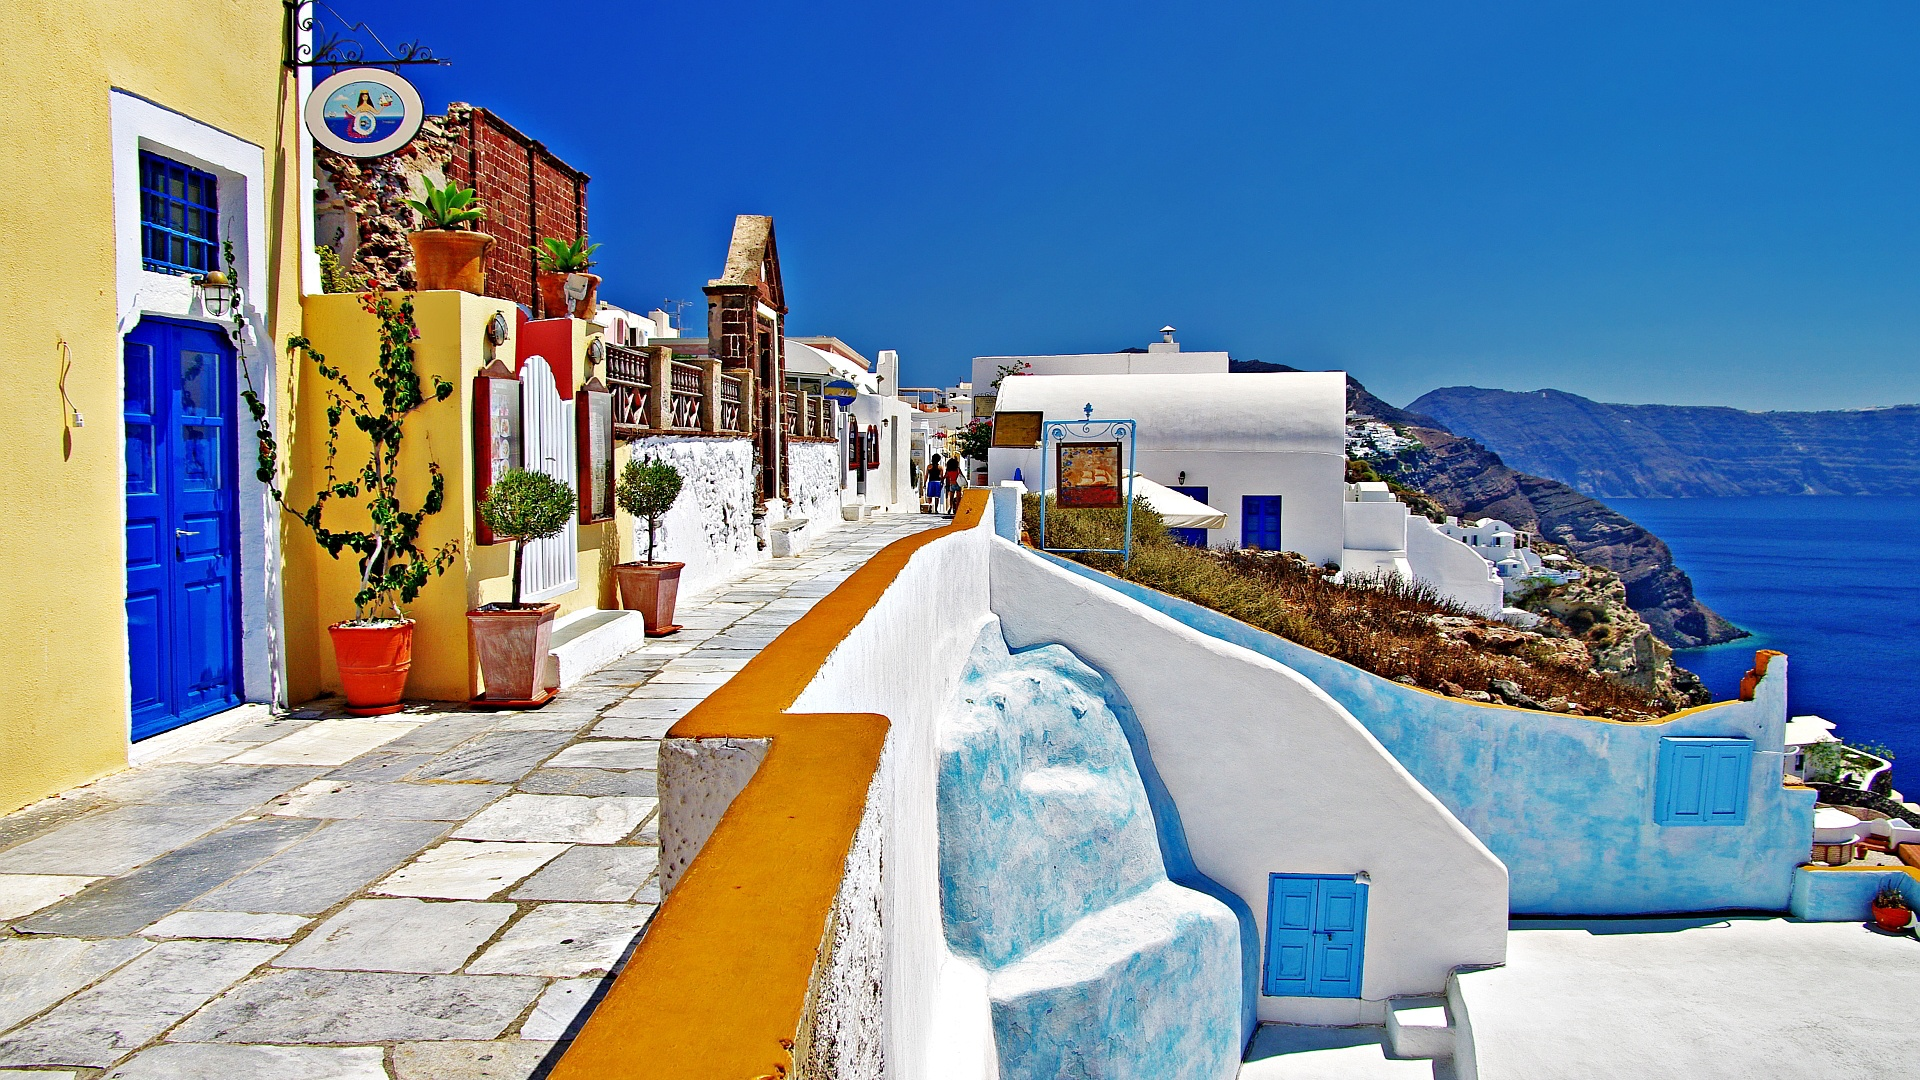 Vacation Packages To Greece Itineraries Tours Katrea Holidays - Greece tour packages